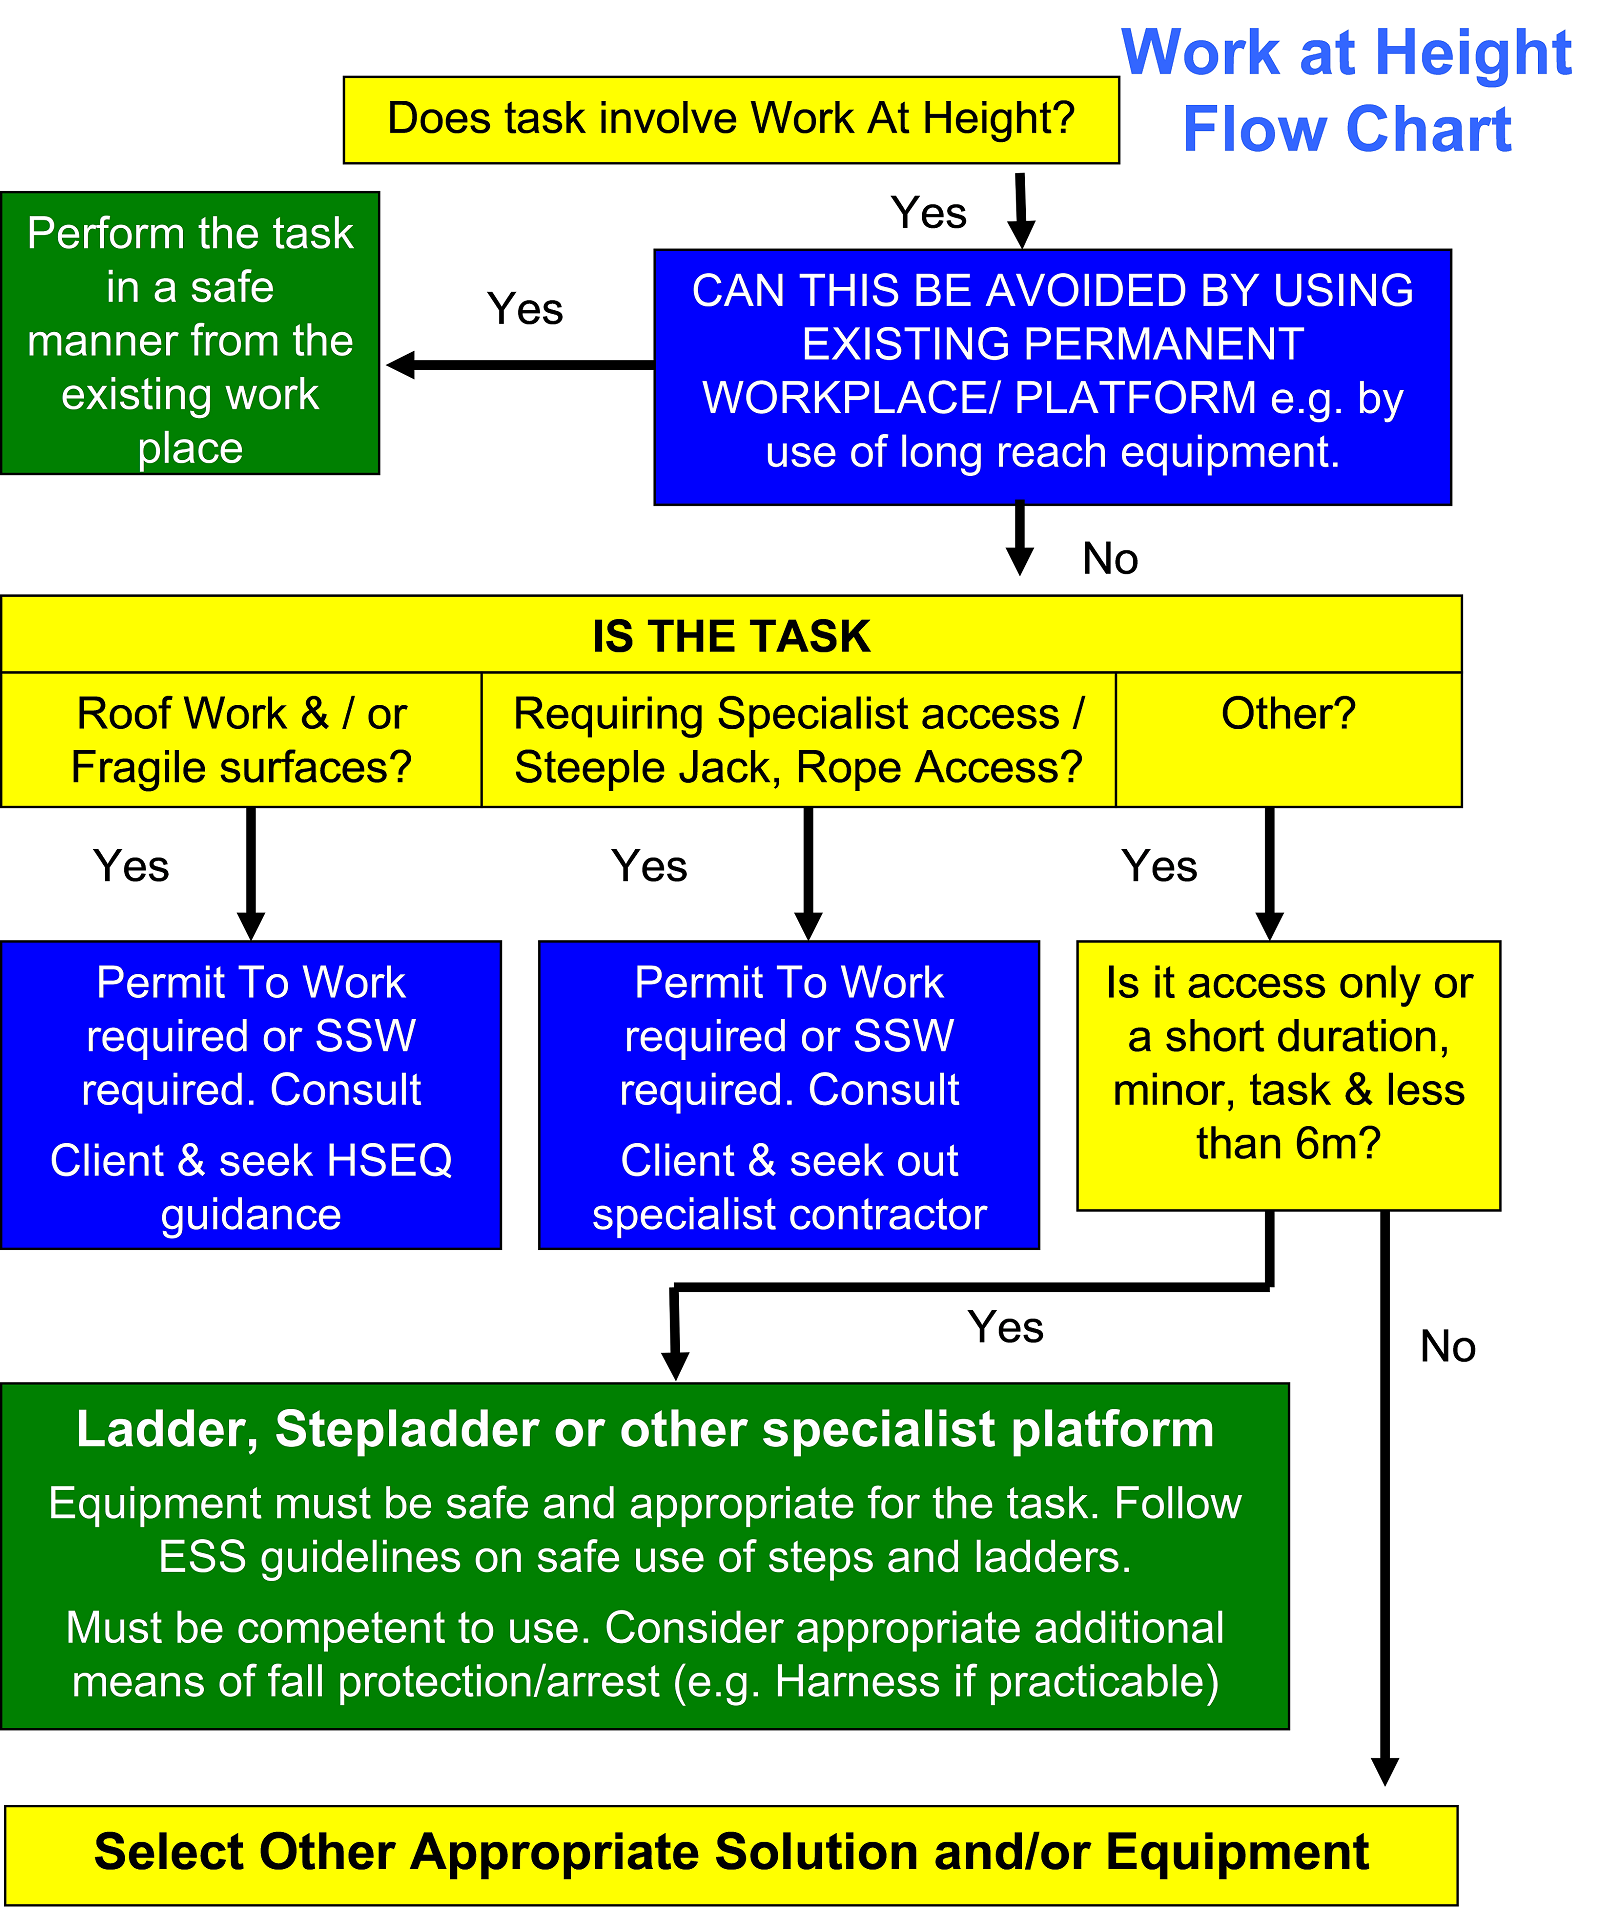 Work at Height Flow Chart 2